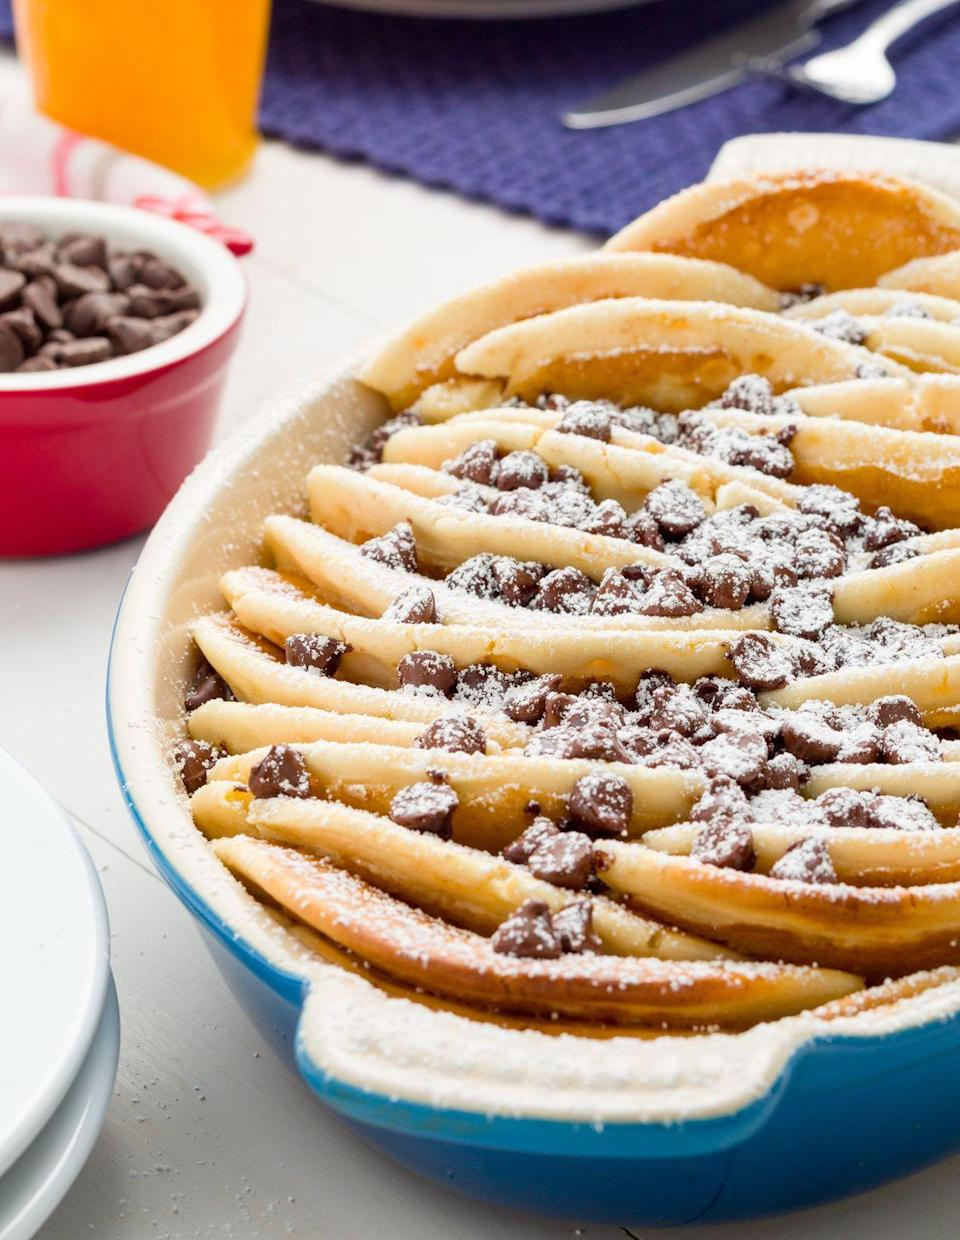 """<p> Layers of fluffy pancakes, sprinkled with chocolate chips, and showered in powdered sugar.</p><p>Get the recipe from <a href=""""https://www.delish.com/cooking/recipe-ideas/recipes/a45036/chocolate-chip-pancake-casserole-recipe/"""" rel=""""nofollow noopener"""" target=""""_blank"""" data-ylk=""""slk:Delish"""" class=""""link rapid-noclick-resp"""">Delish</a>.</p>"""